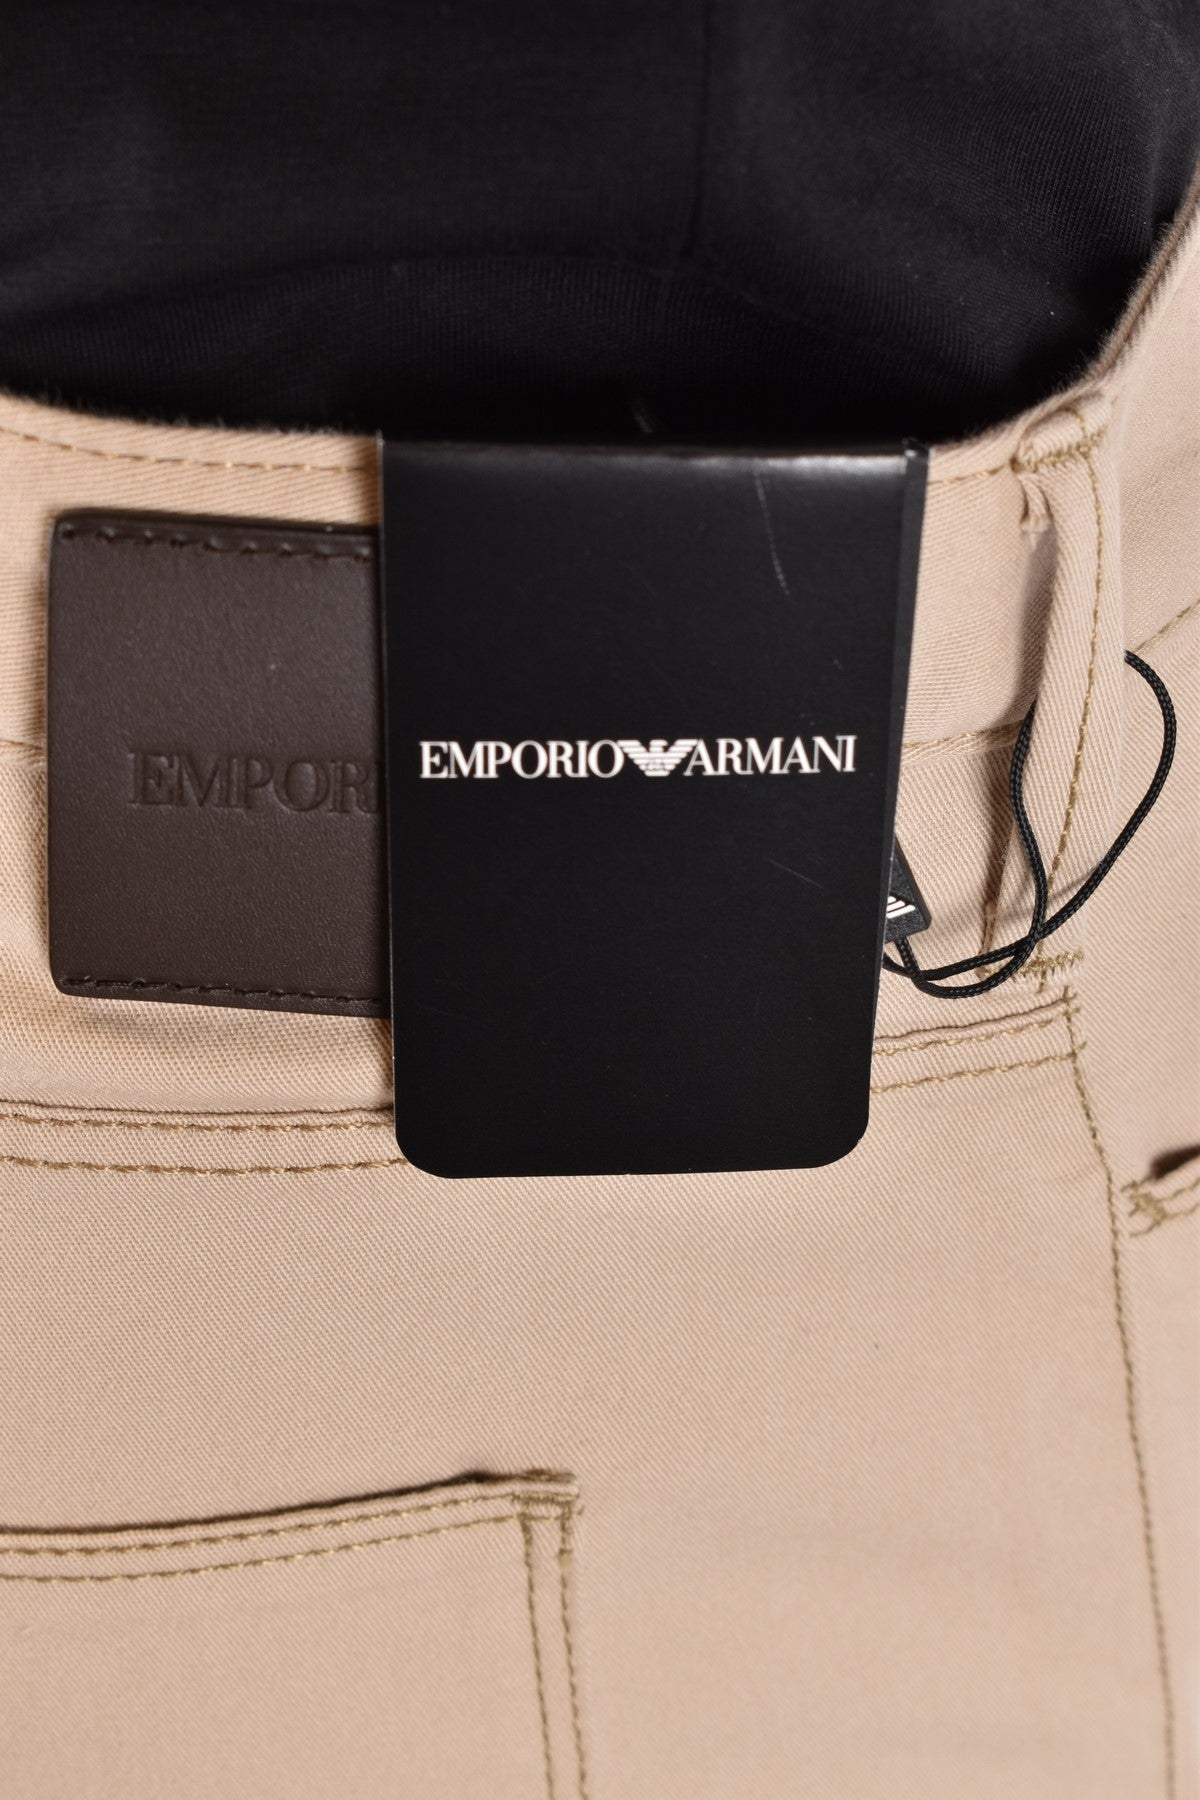 Jeans Emporio Armani-Men's Fashion - Men's Clothing - Jeans-Product Details Terms: New With LabelClothing Type: JeansMain Color: BeigeSeason: Spring / SummerMade In: BulgariaGender: ManSize: UsComposition: Cotton 96%, Elastane 4%Year: 2020Manufacturer Part Number: 8N1J06 1N0Lz 0132-Keyomi-Sook